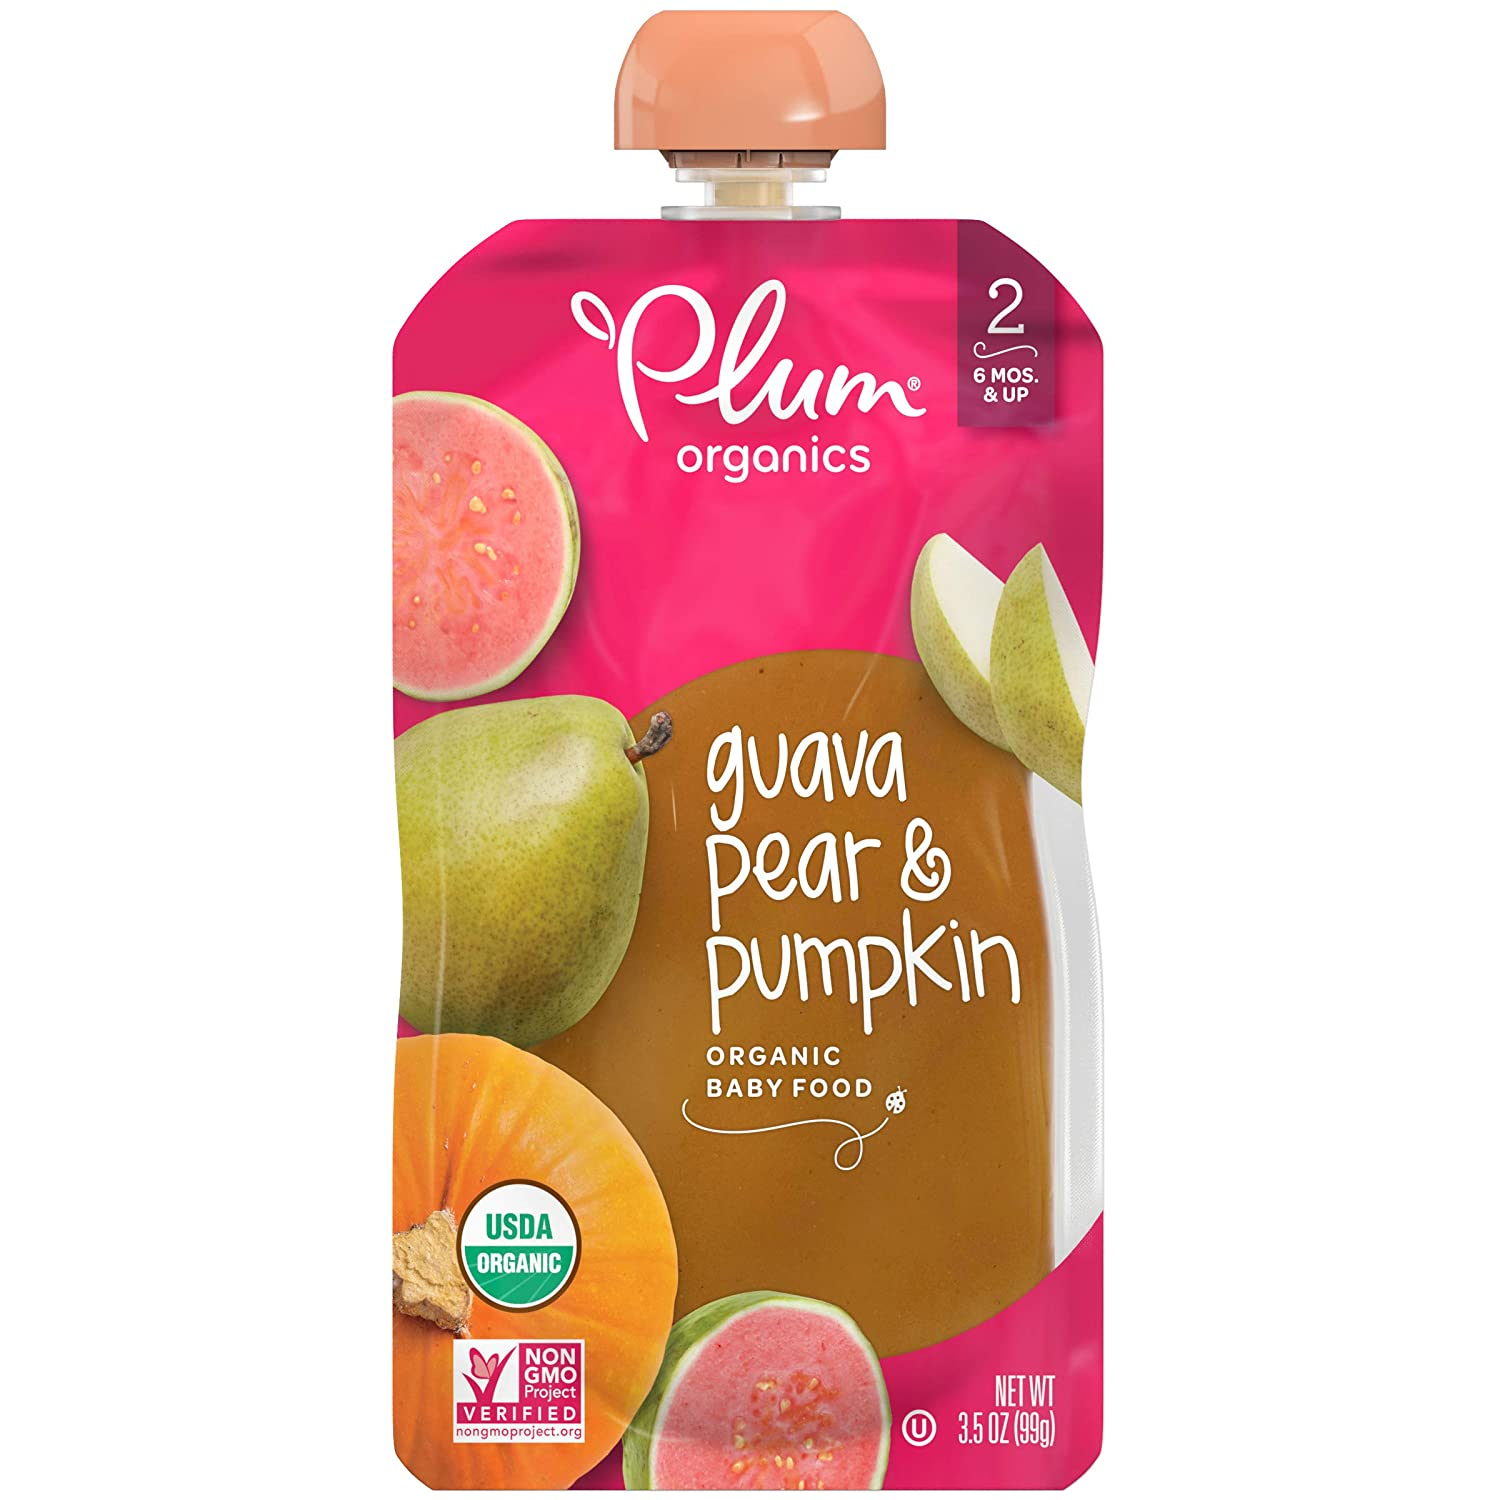 Plum Organics Stage 2, Organic Baby Food, Guava, Pear & Pumpkin, 3.5 Ounce Pouch (Pack of 12) (Packaging May Vary)